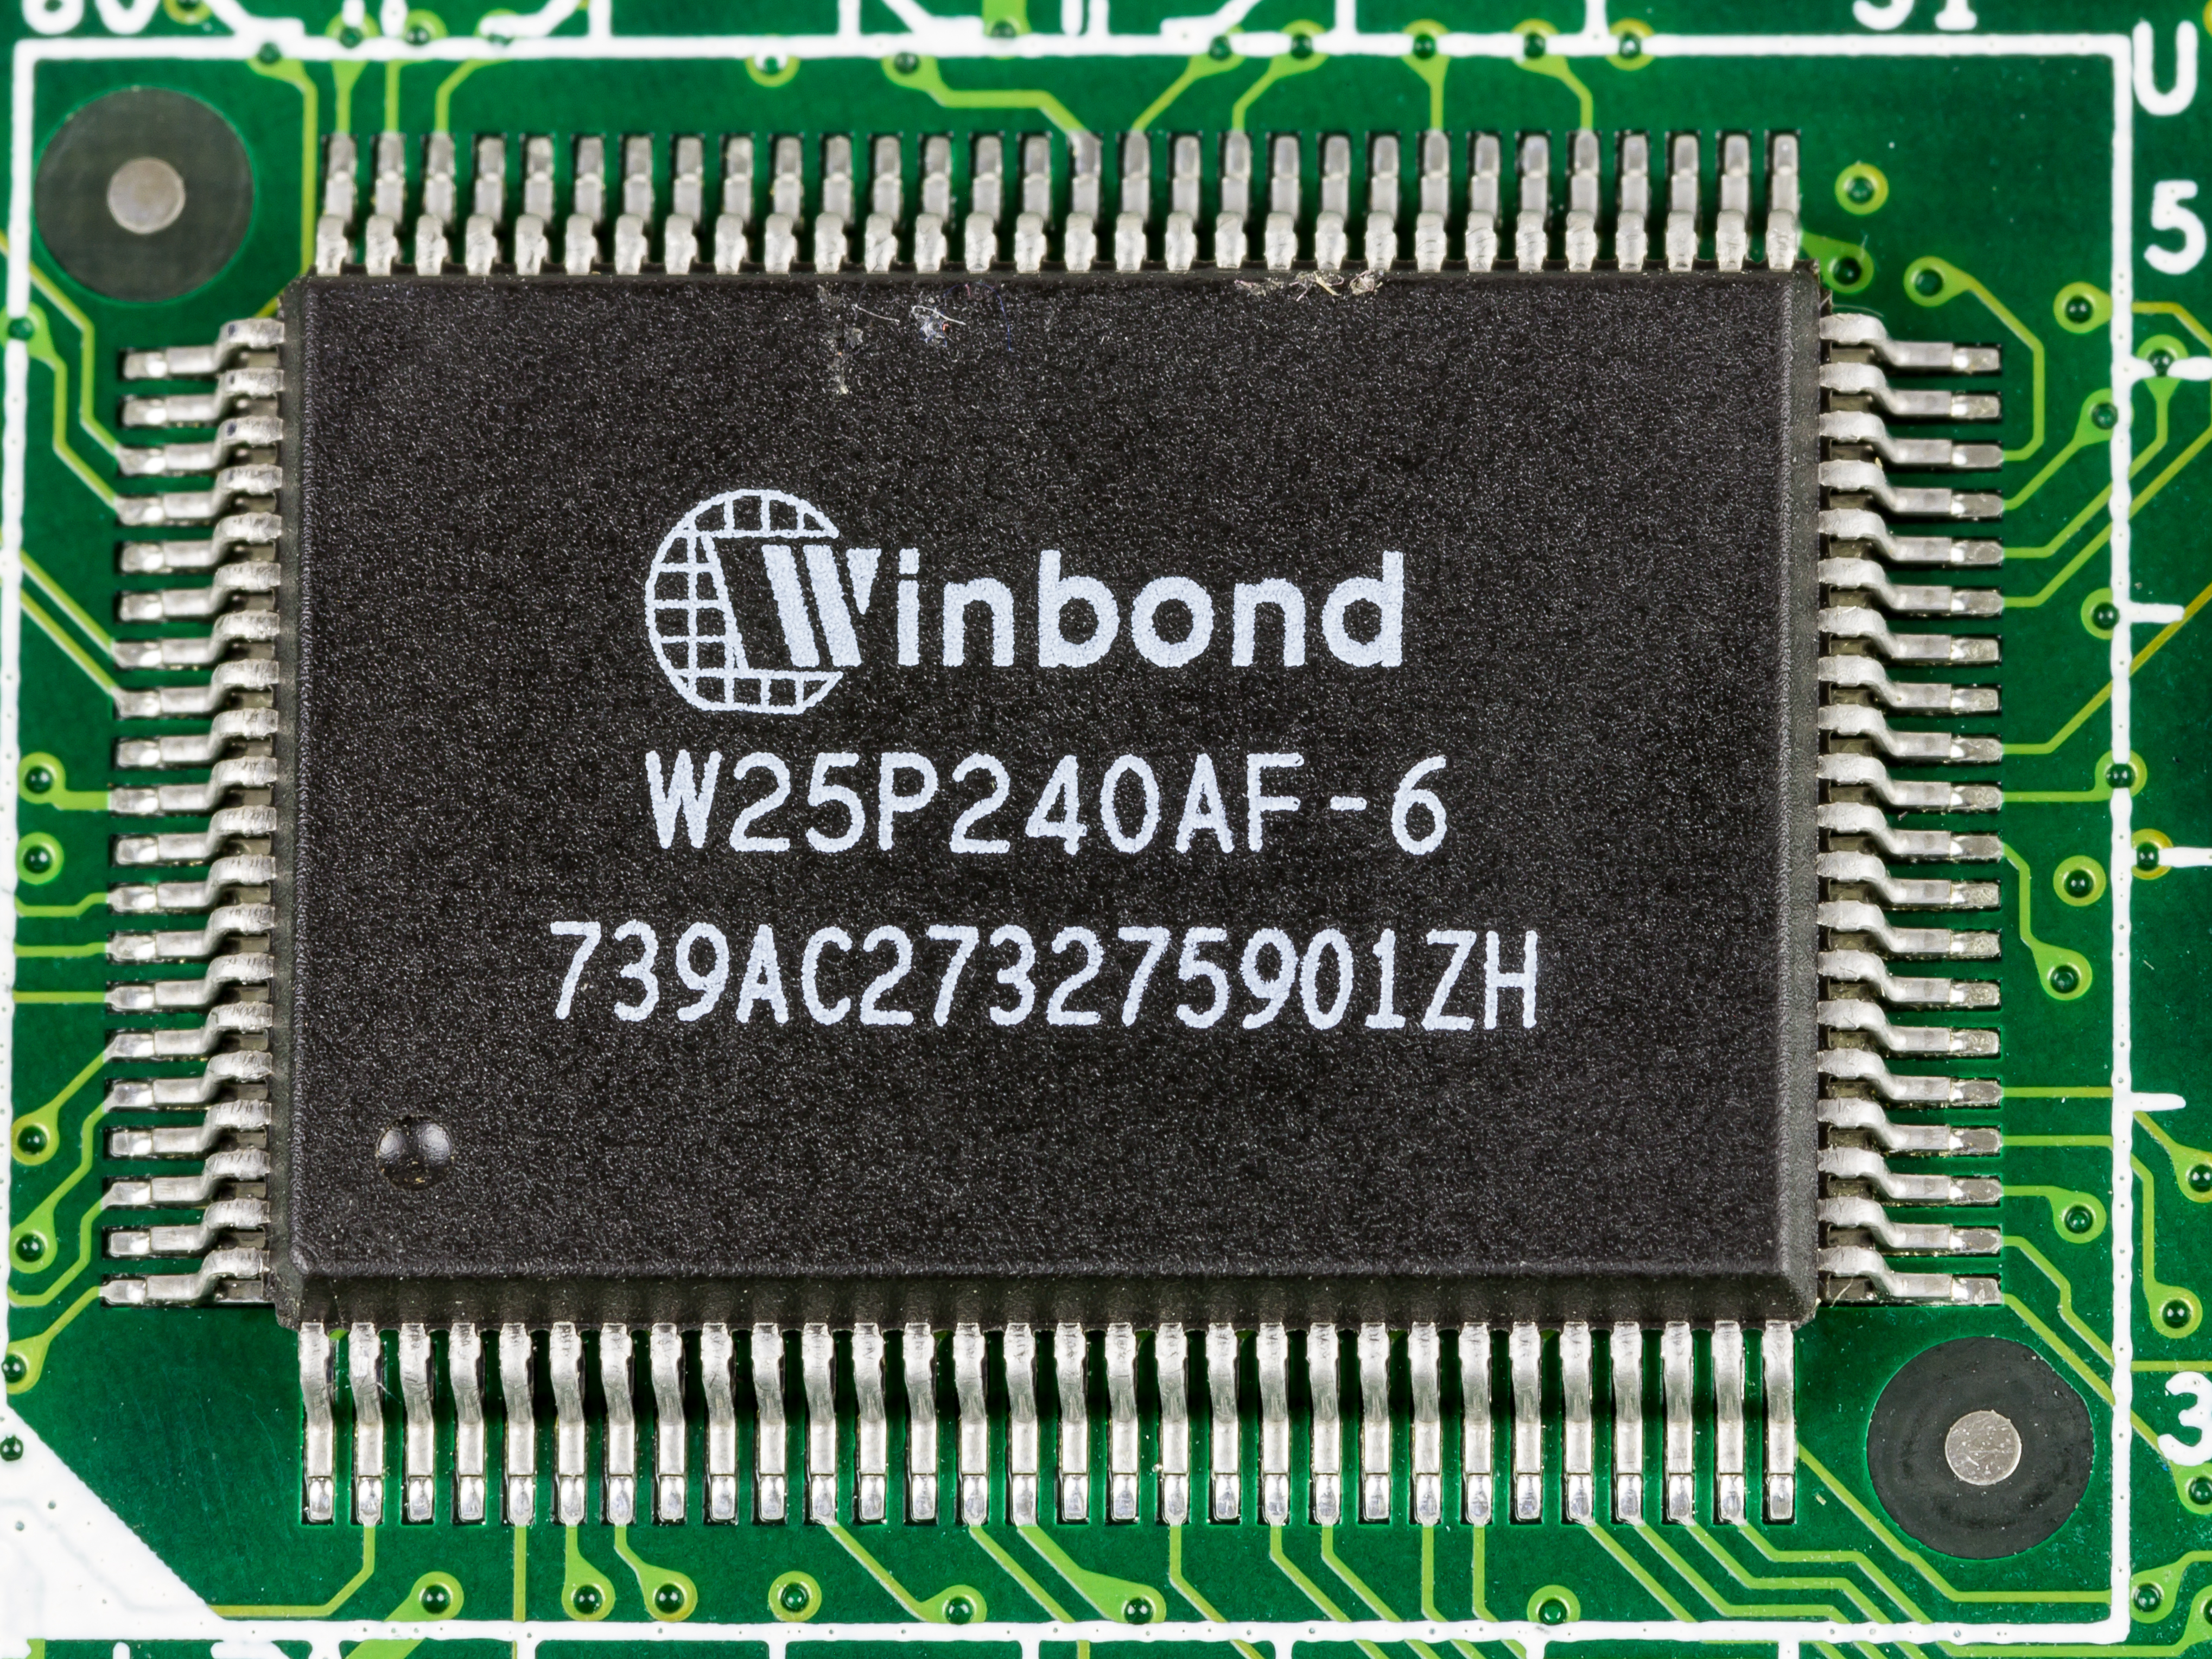 Filerocky 518hv Winbond W25p240af 6 2397 Wikimedia Commons The History Of Integrated Circuits And Microchips Thumbnail For Version As 1116 October 2016